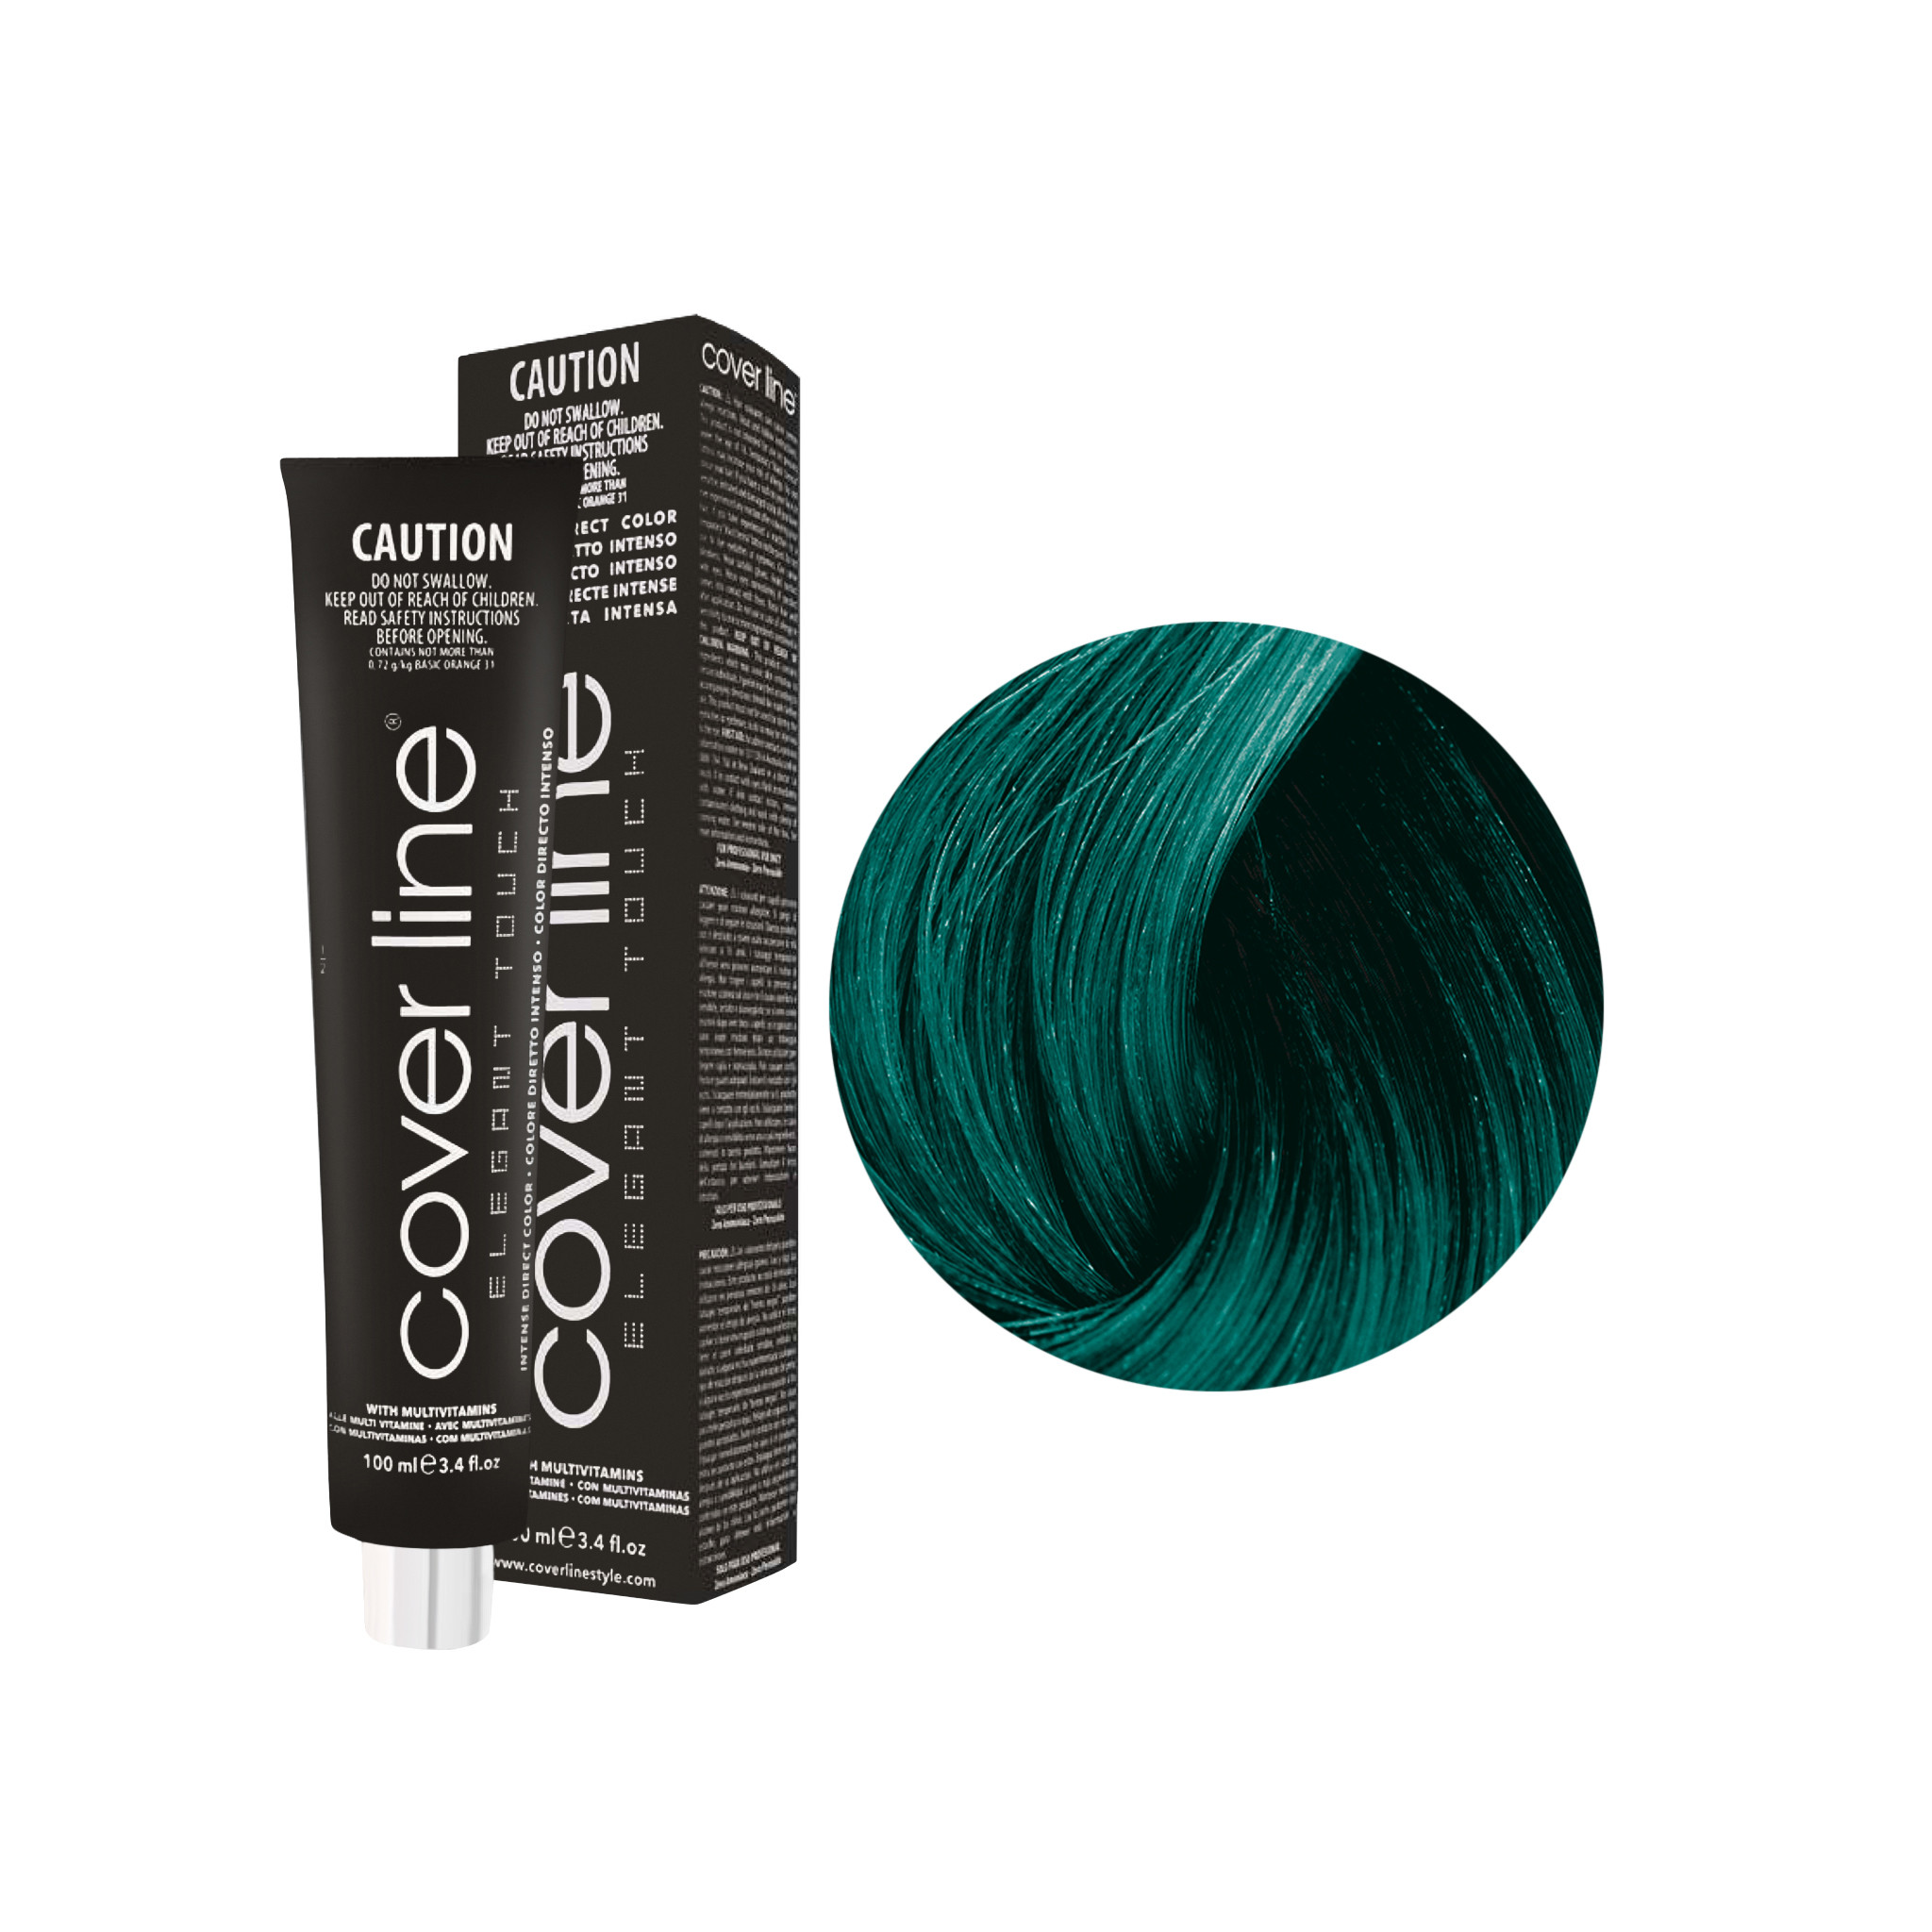 Cover Line Aquamarine Direct Dye by Salon Support Hair & Barber Barbershop Trade Wholesale Hairdressing Supplies Melbourne Australia